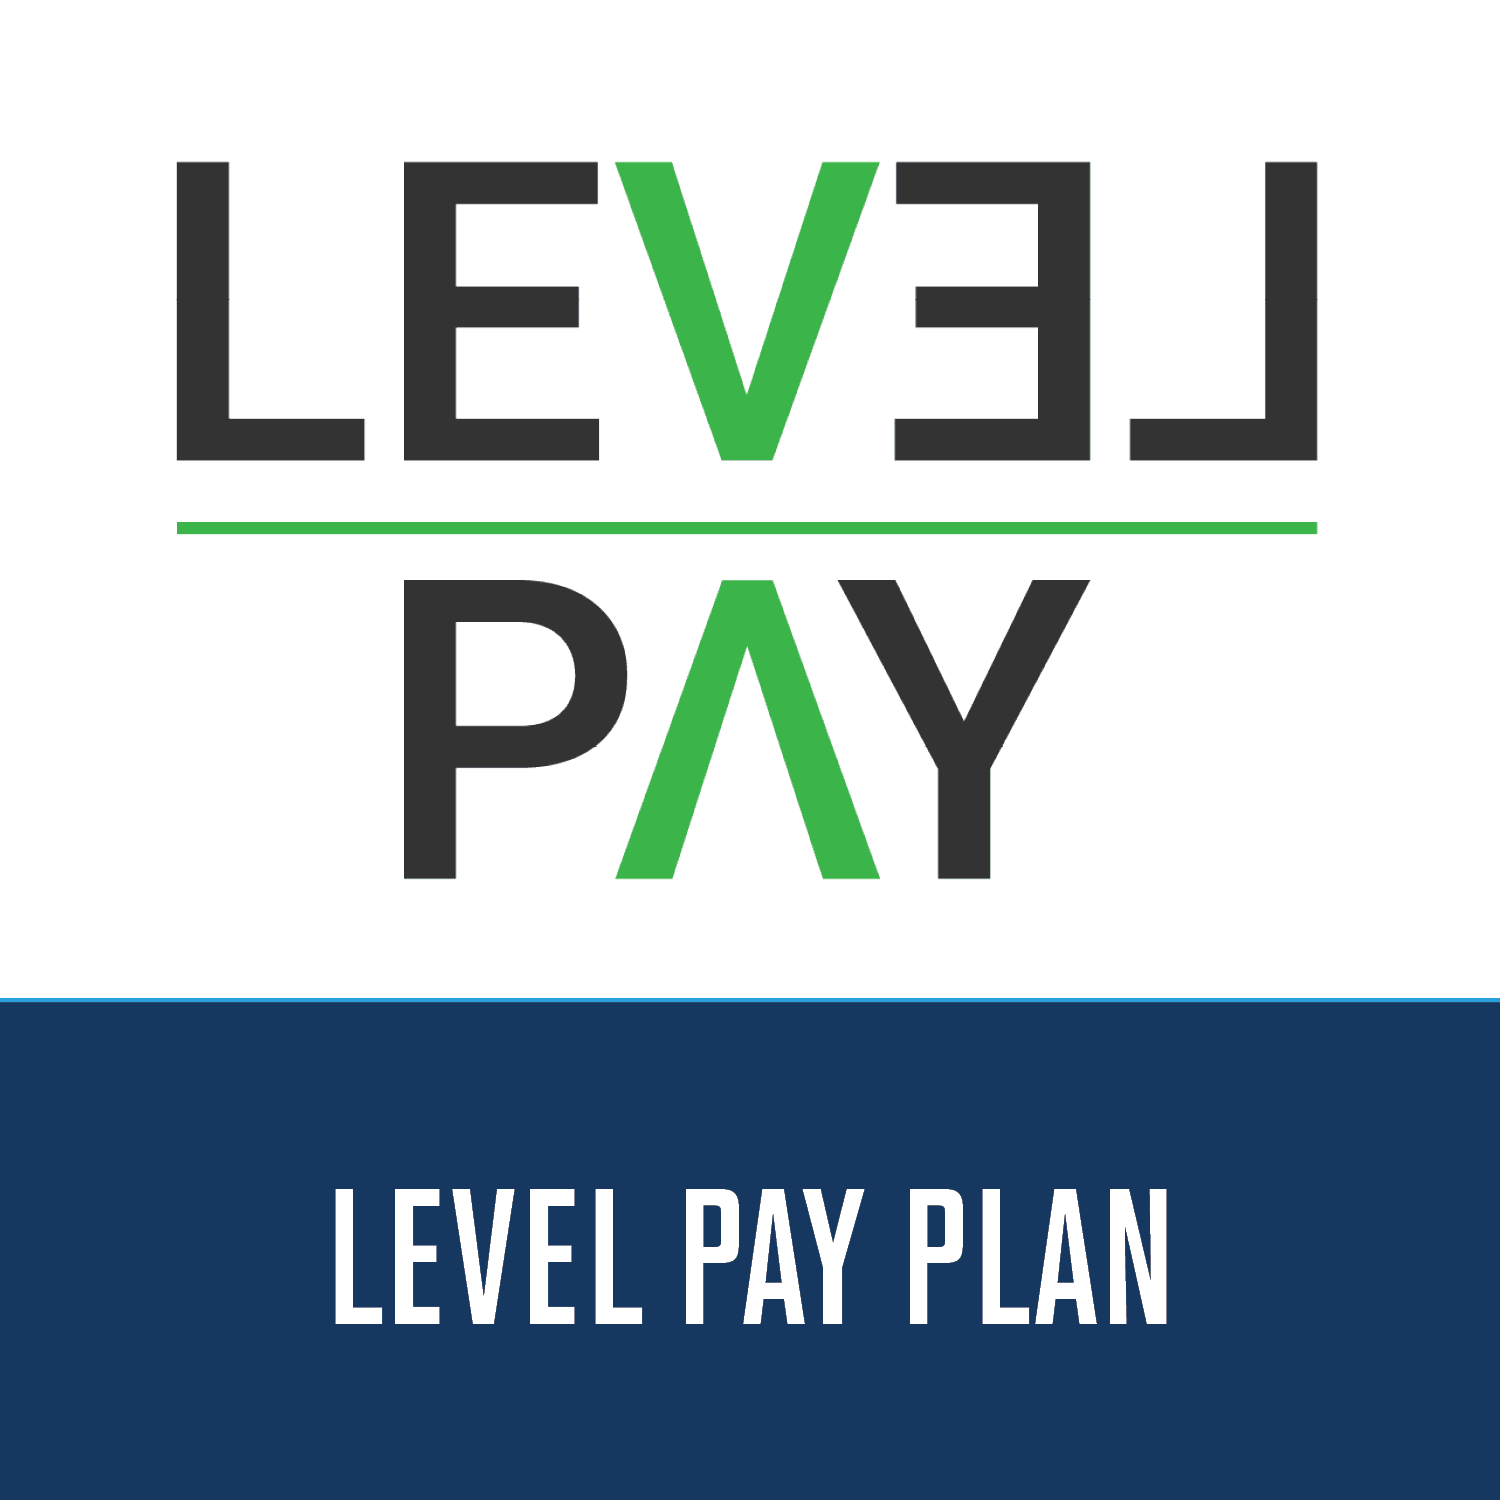 Level Pay